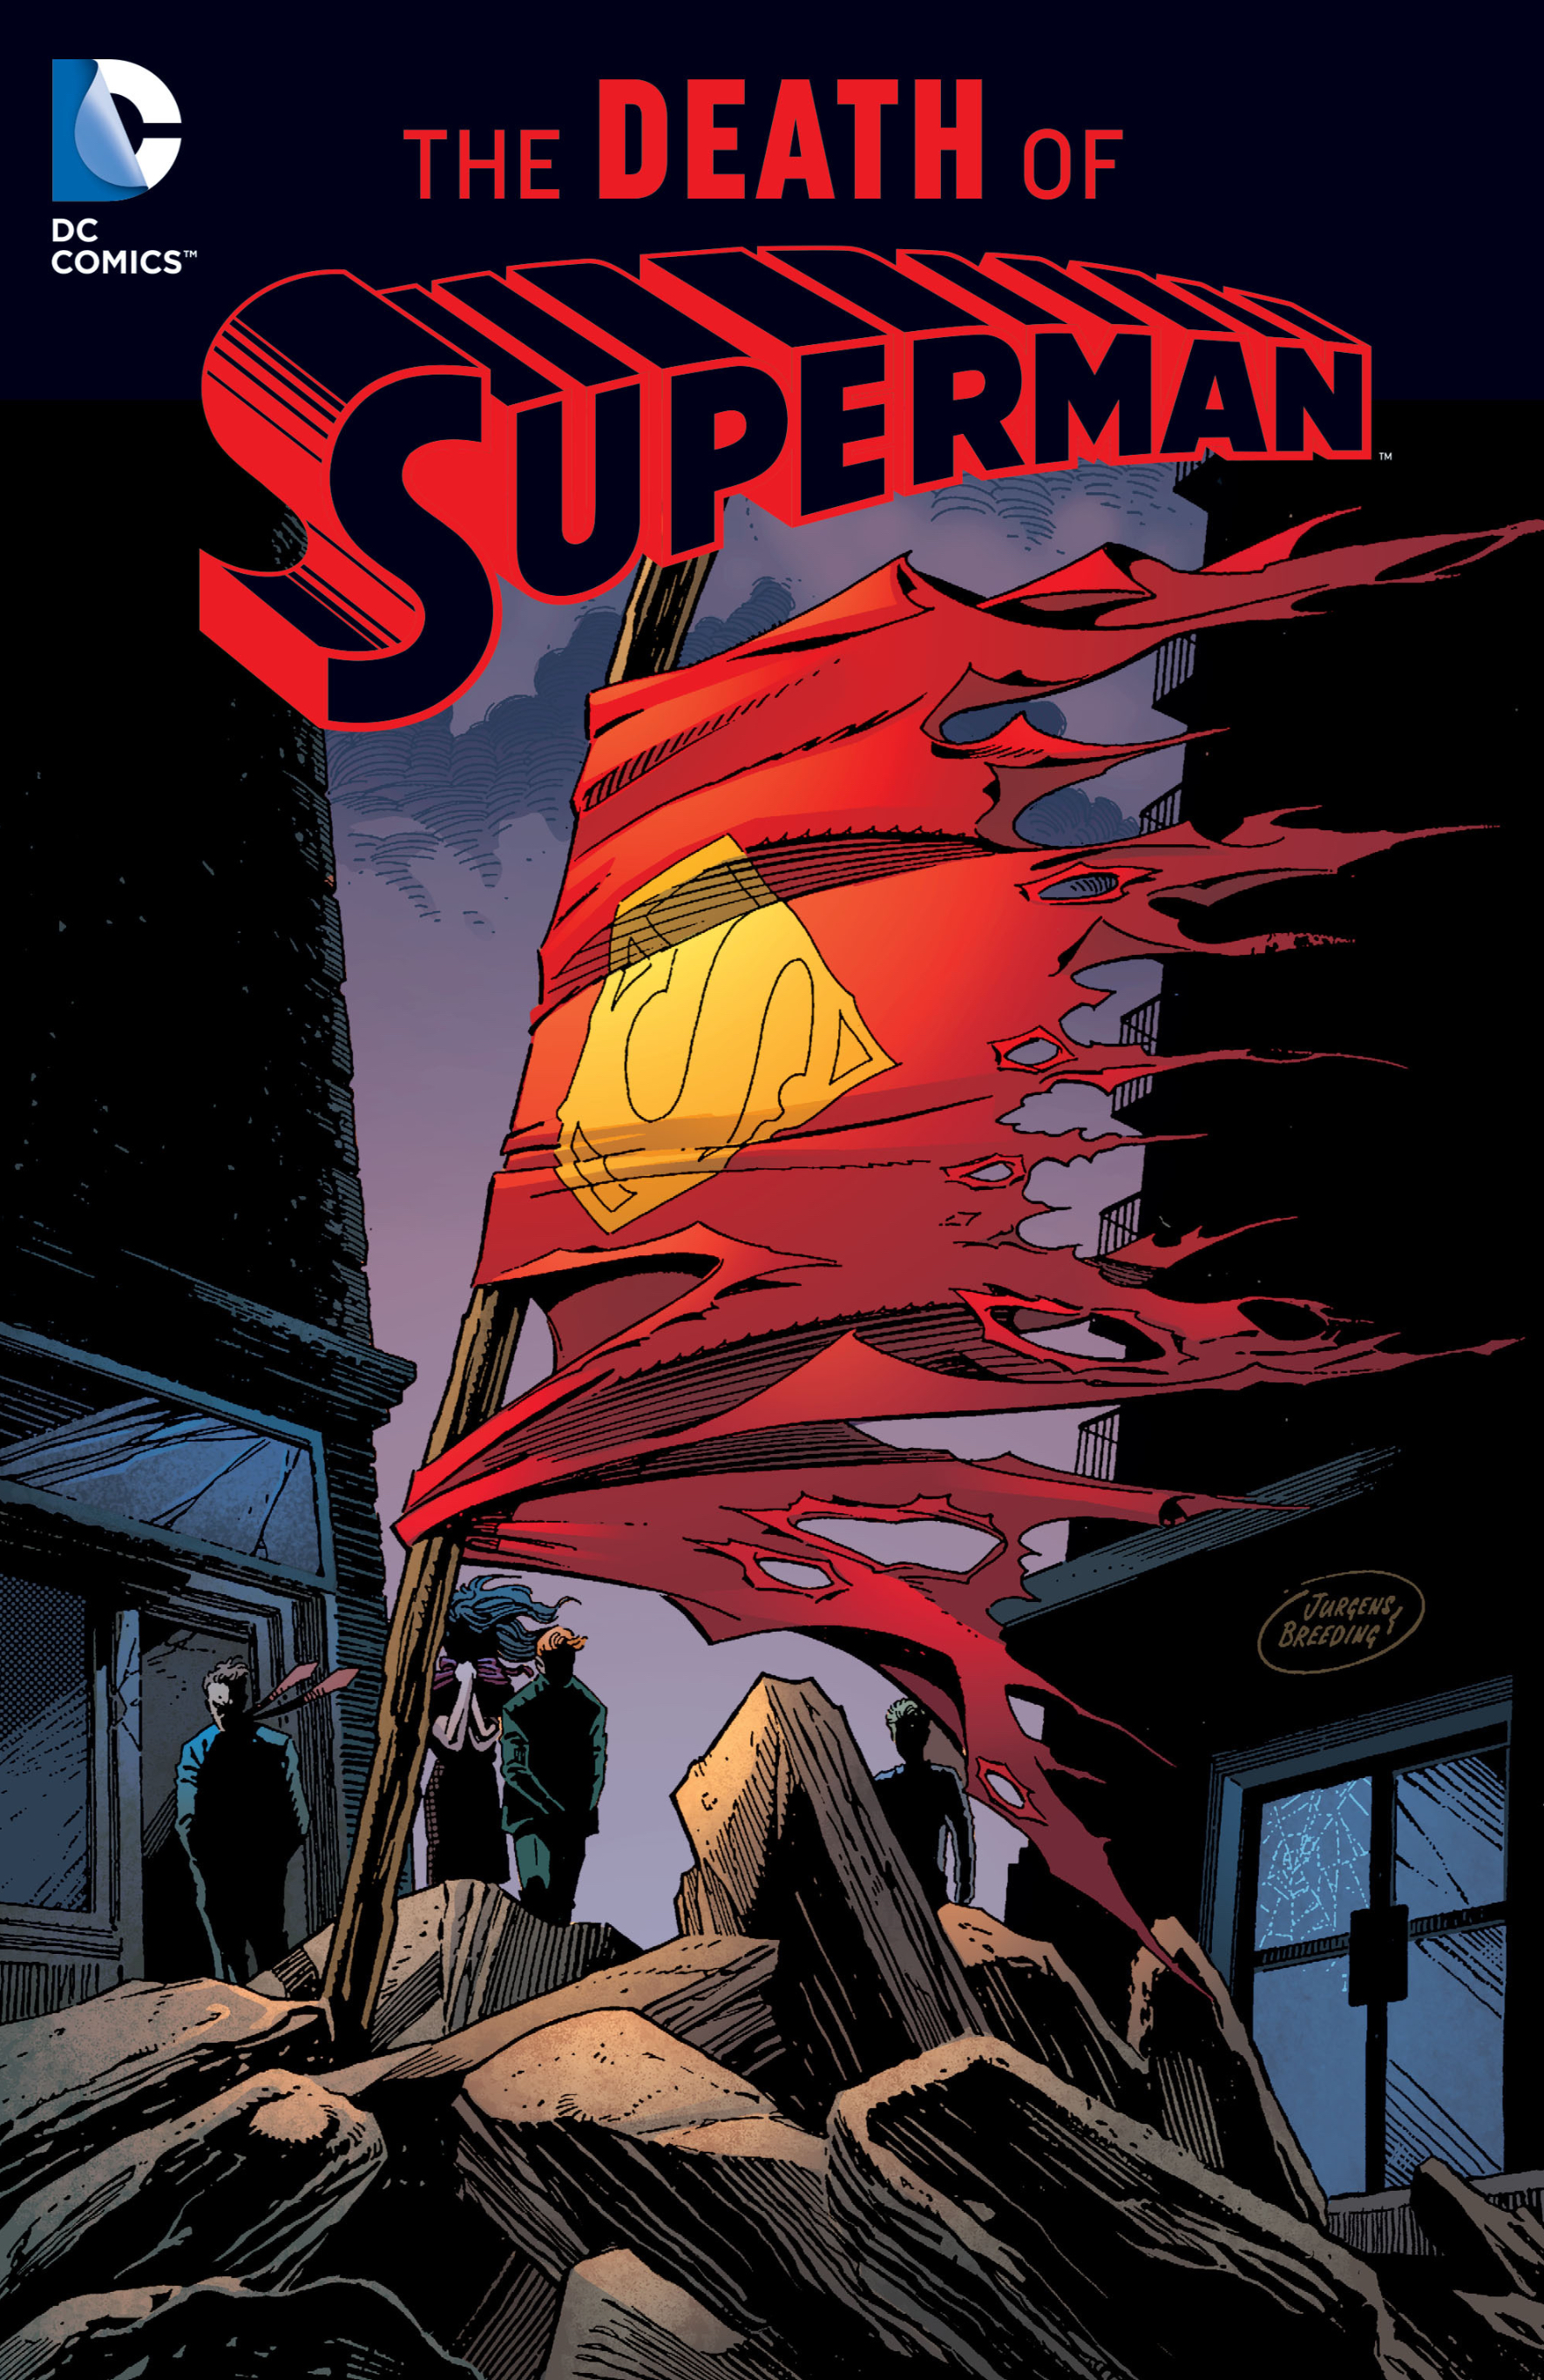 The cover of the Death of Superman trade collection, 2016 publication, DC Comics